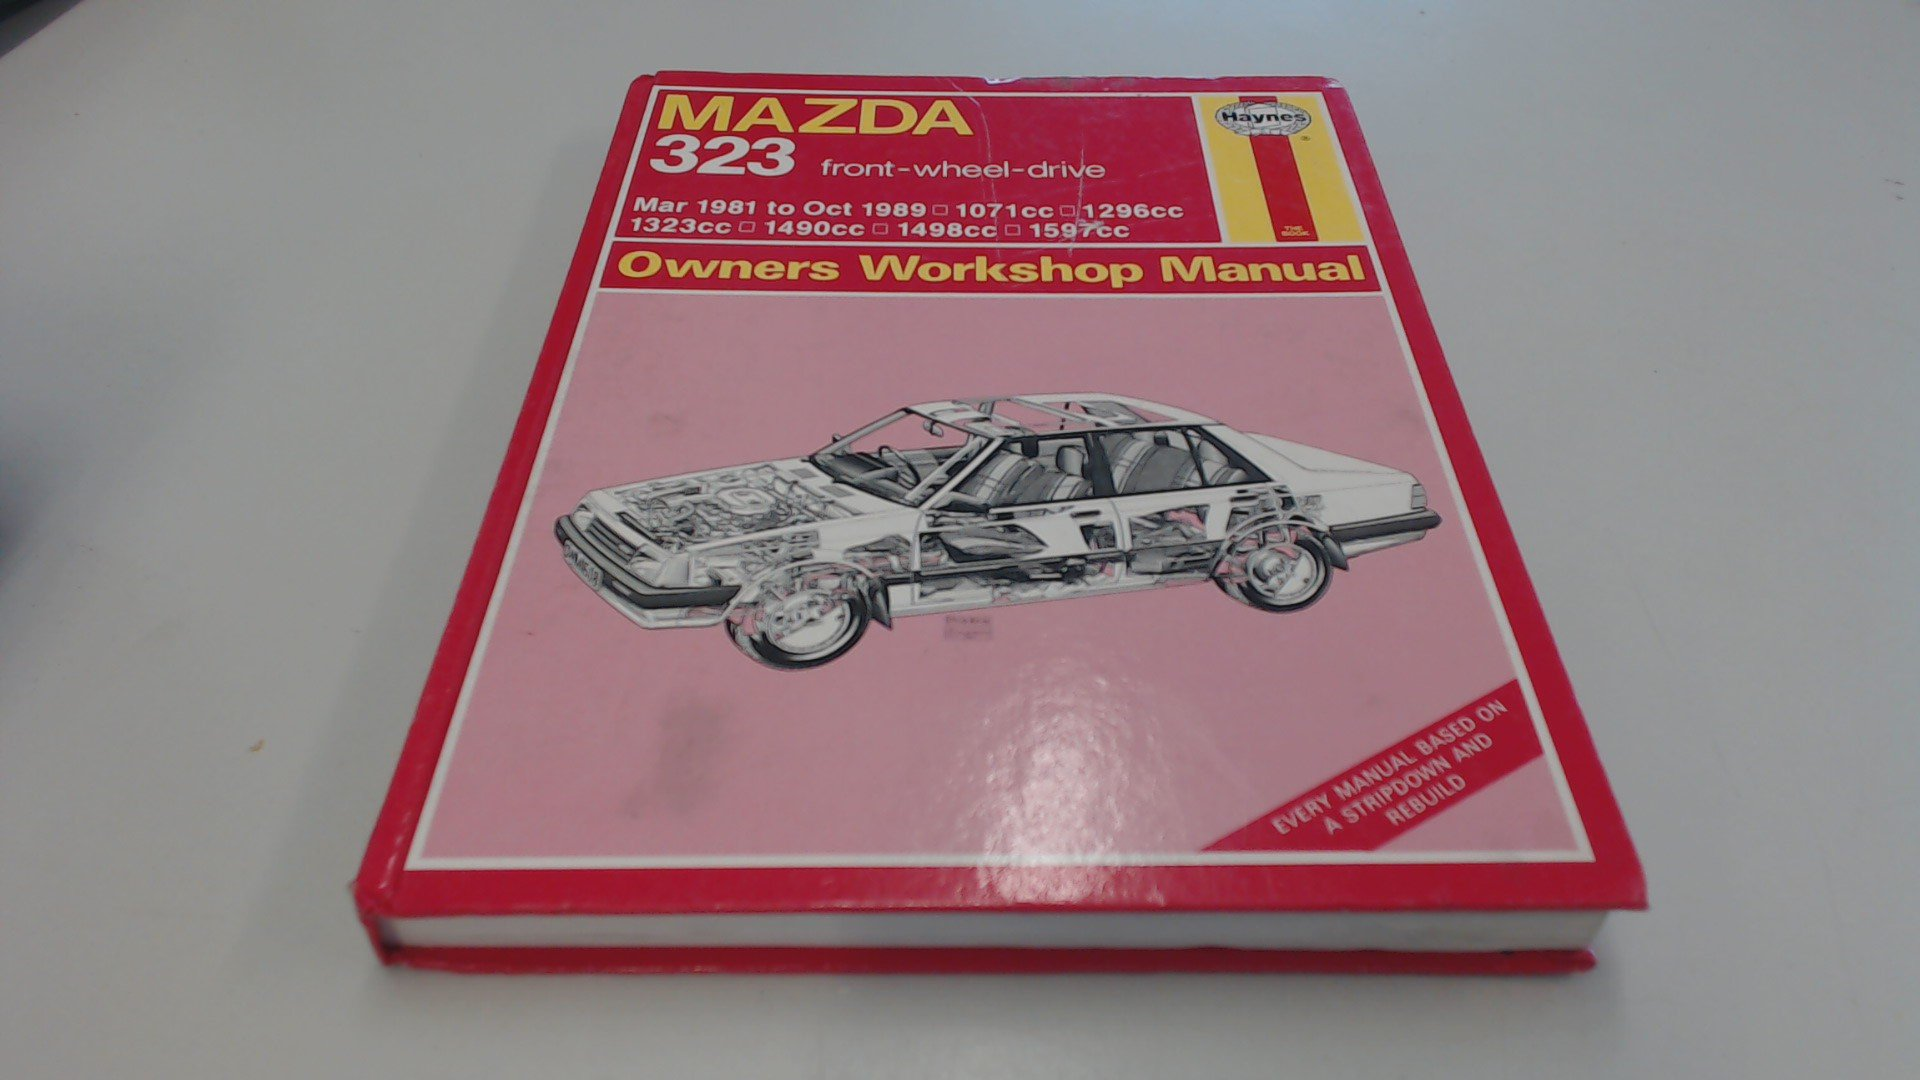 Mazda 323 Fwd (Mar '81 to Oct '89) (Service and Repair Manuals) (Service & Repair  Manuals): Mark Coombs: 9781850106081: Amazon.com: Books